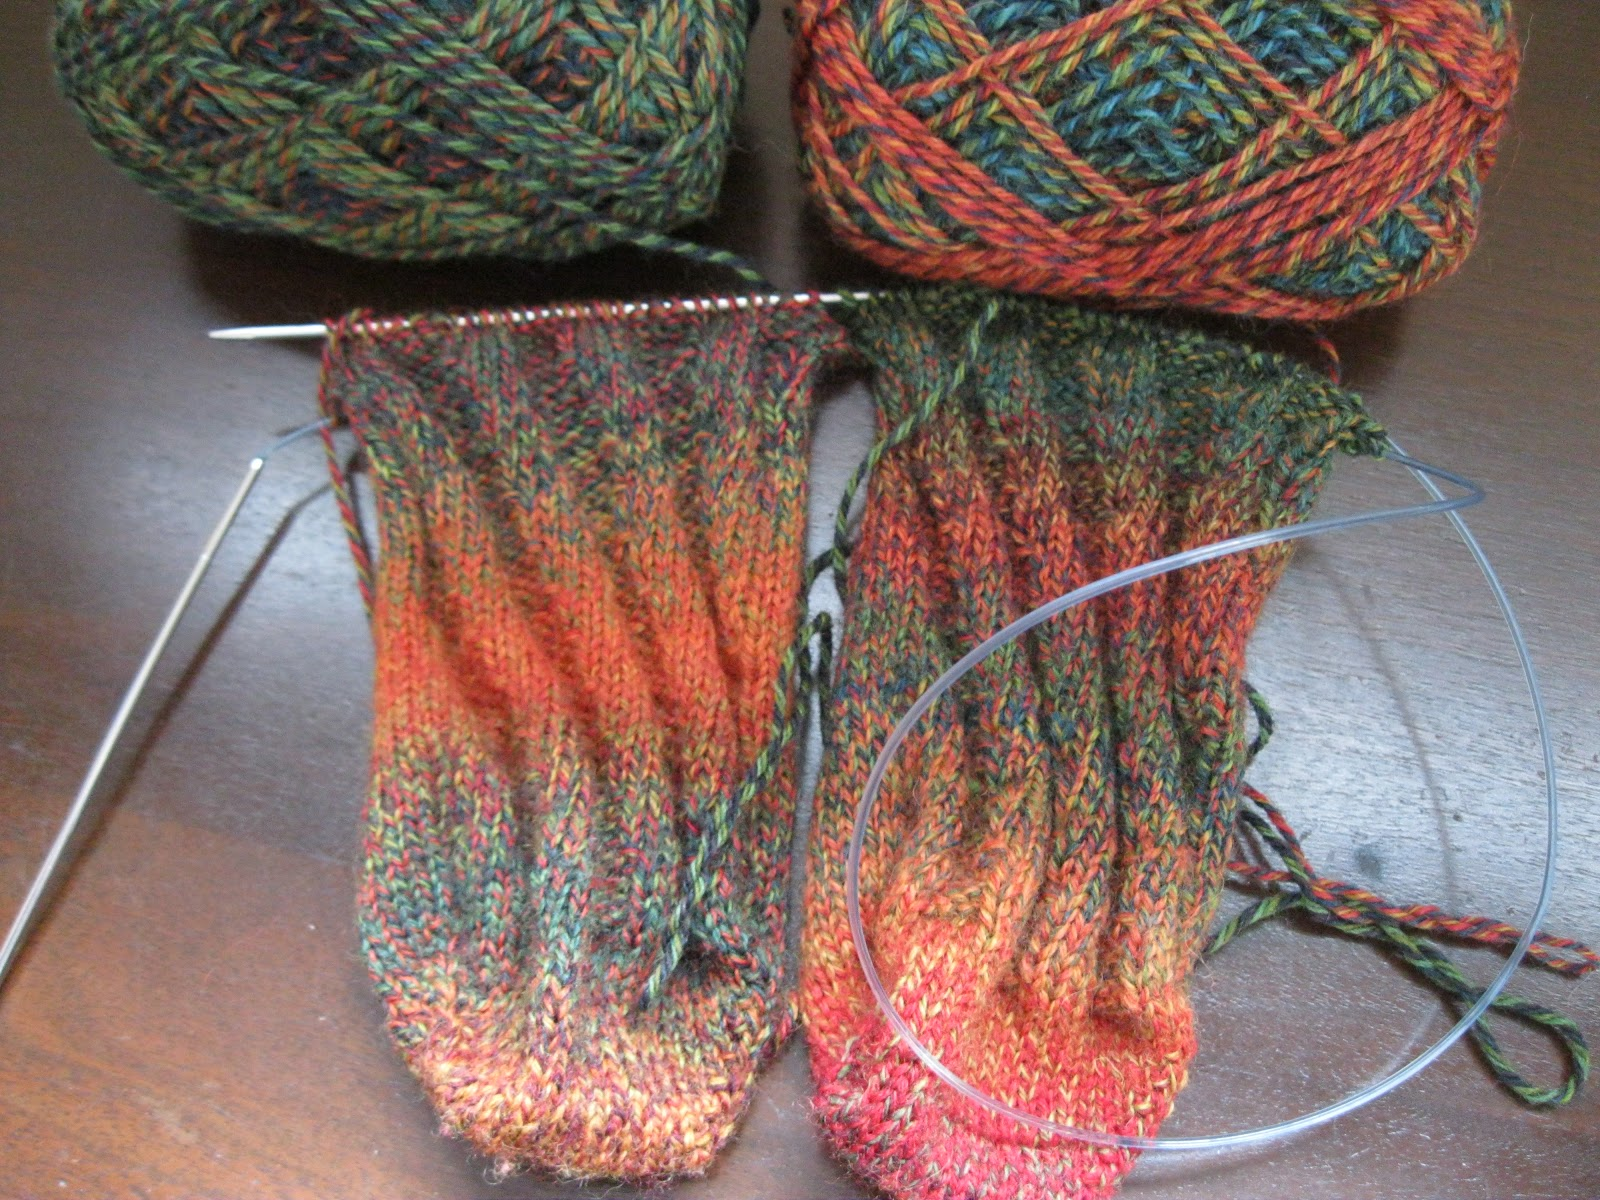 Knitting Tube Socks Free Pattern : Perhaps I Should Have Been Supervised...: Spiral Socks